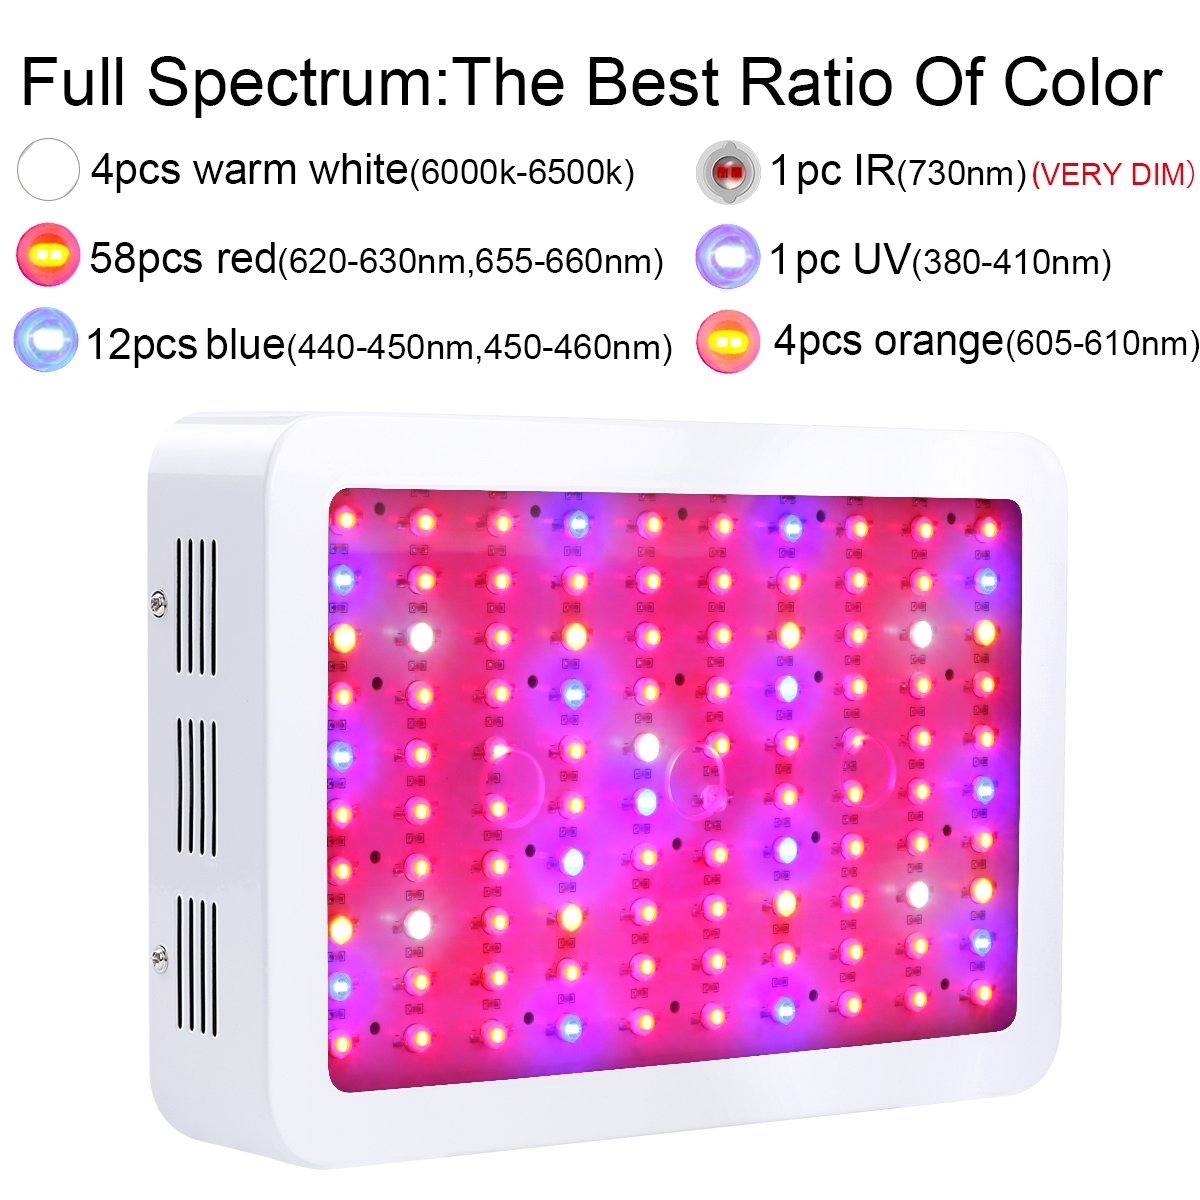 King plus 800w double chips full spectrum led grow light amazon king plus 800w double chips full spectrum led grow light amazon patio lawn garden parisarafo Image collections